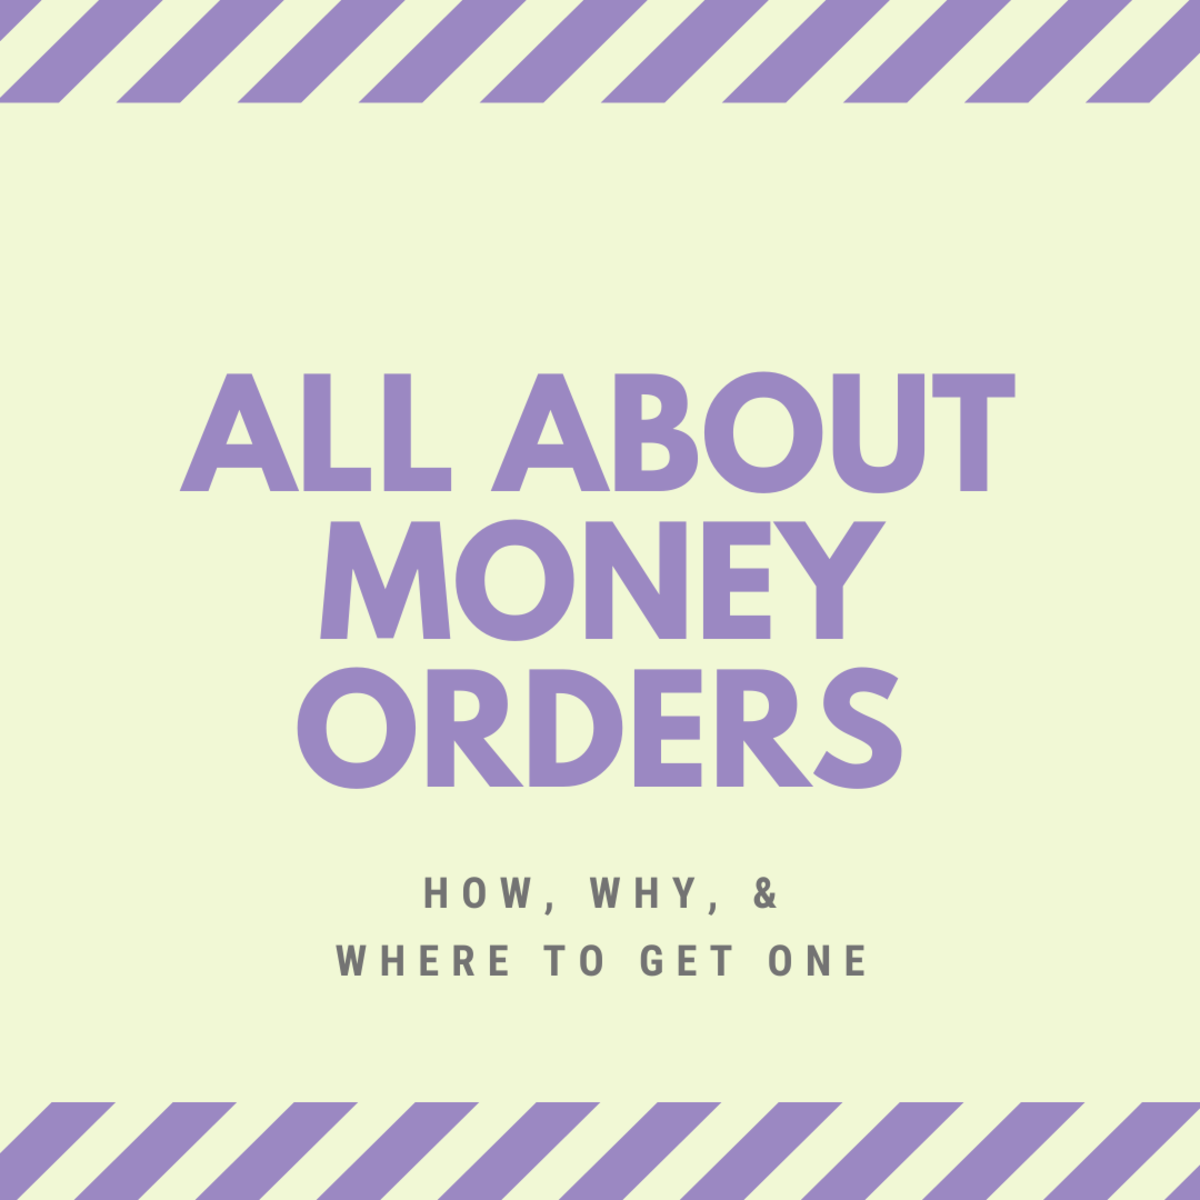 How to Get a Money Order